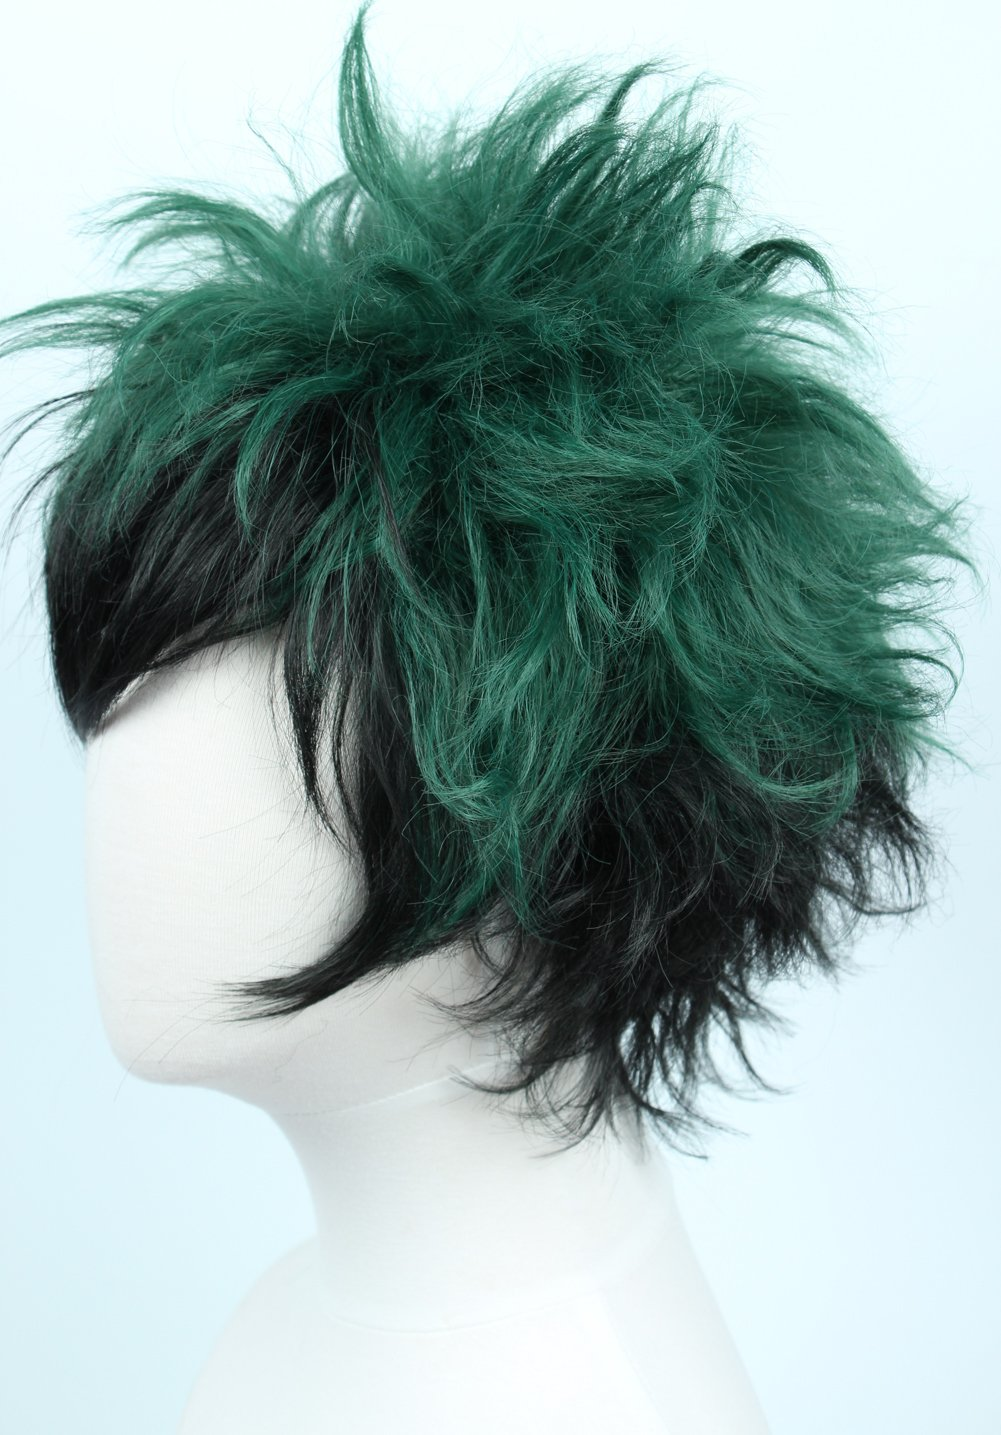 Linfairy Anime Cosplay Wig Short Black Green Halloween Costume Curly Wig by Linfairy (Image #4)